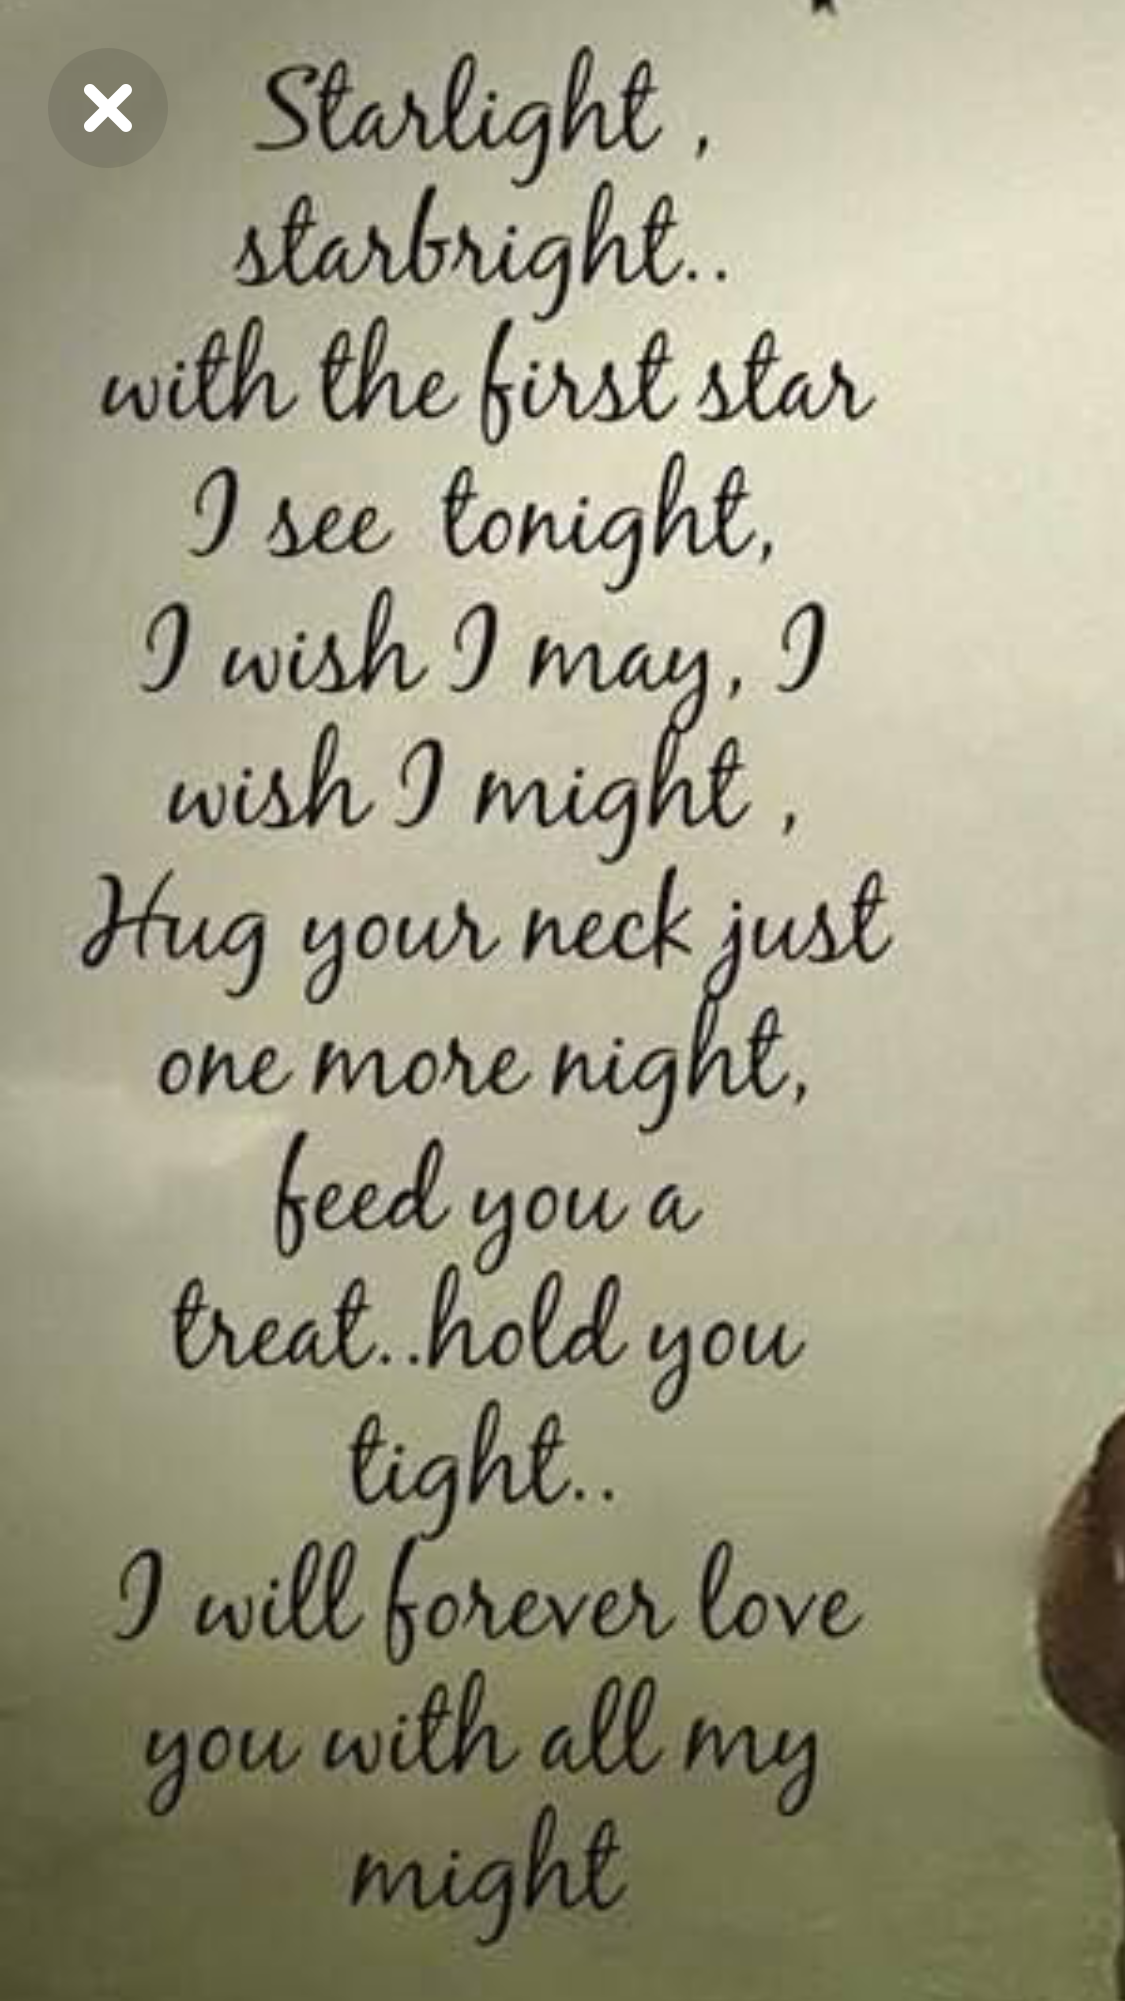 Pin By Michelle Sutton On Shadow My Love I Will Always Always Love You Mommy Loves You Always Love You One More Night